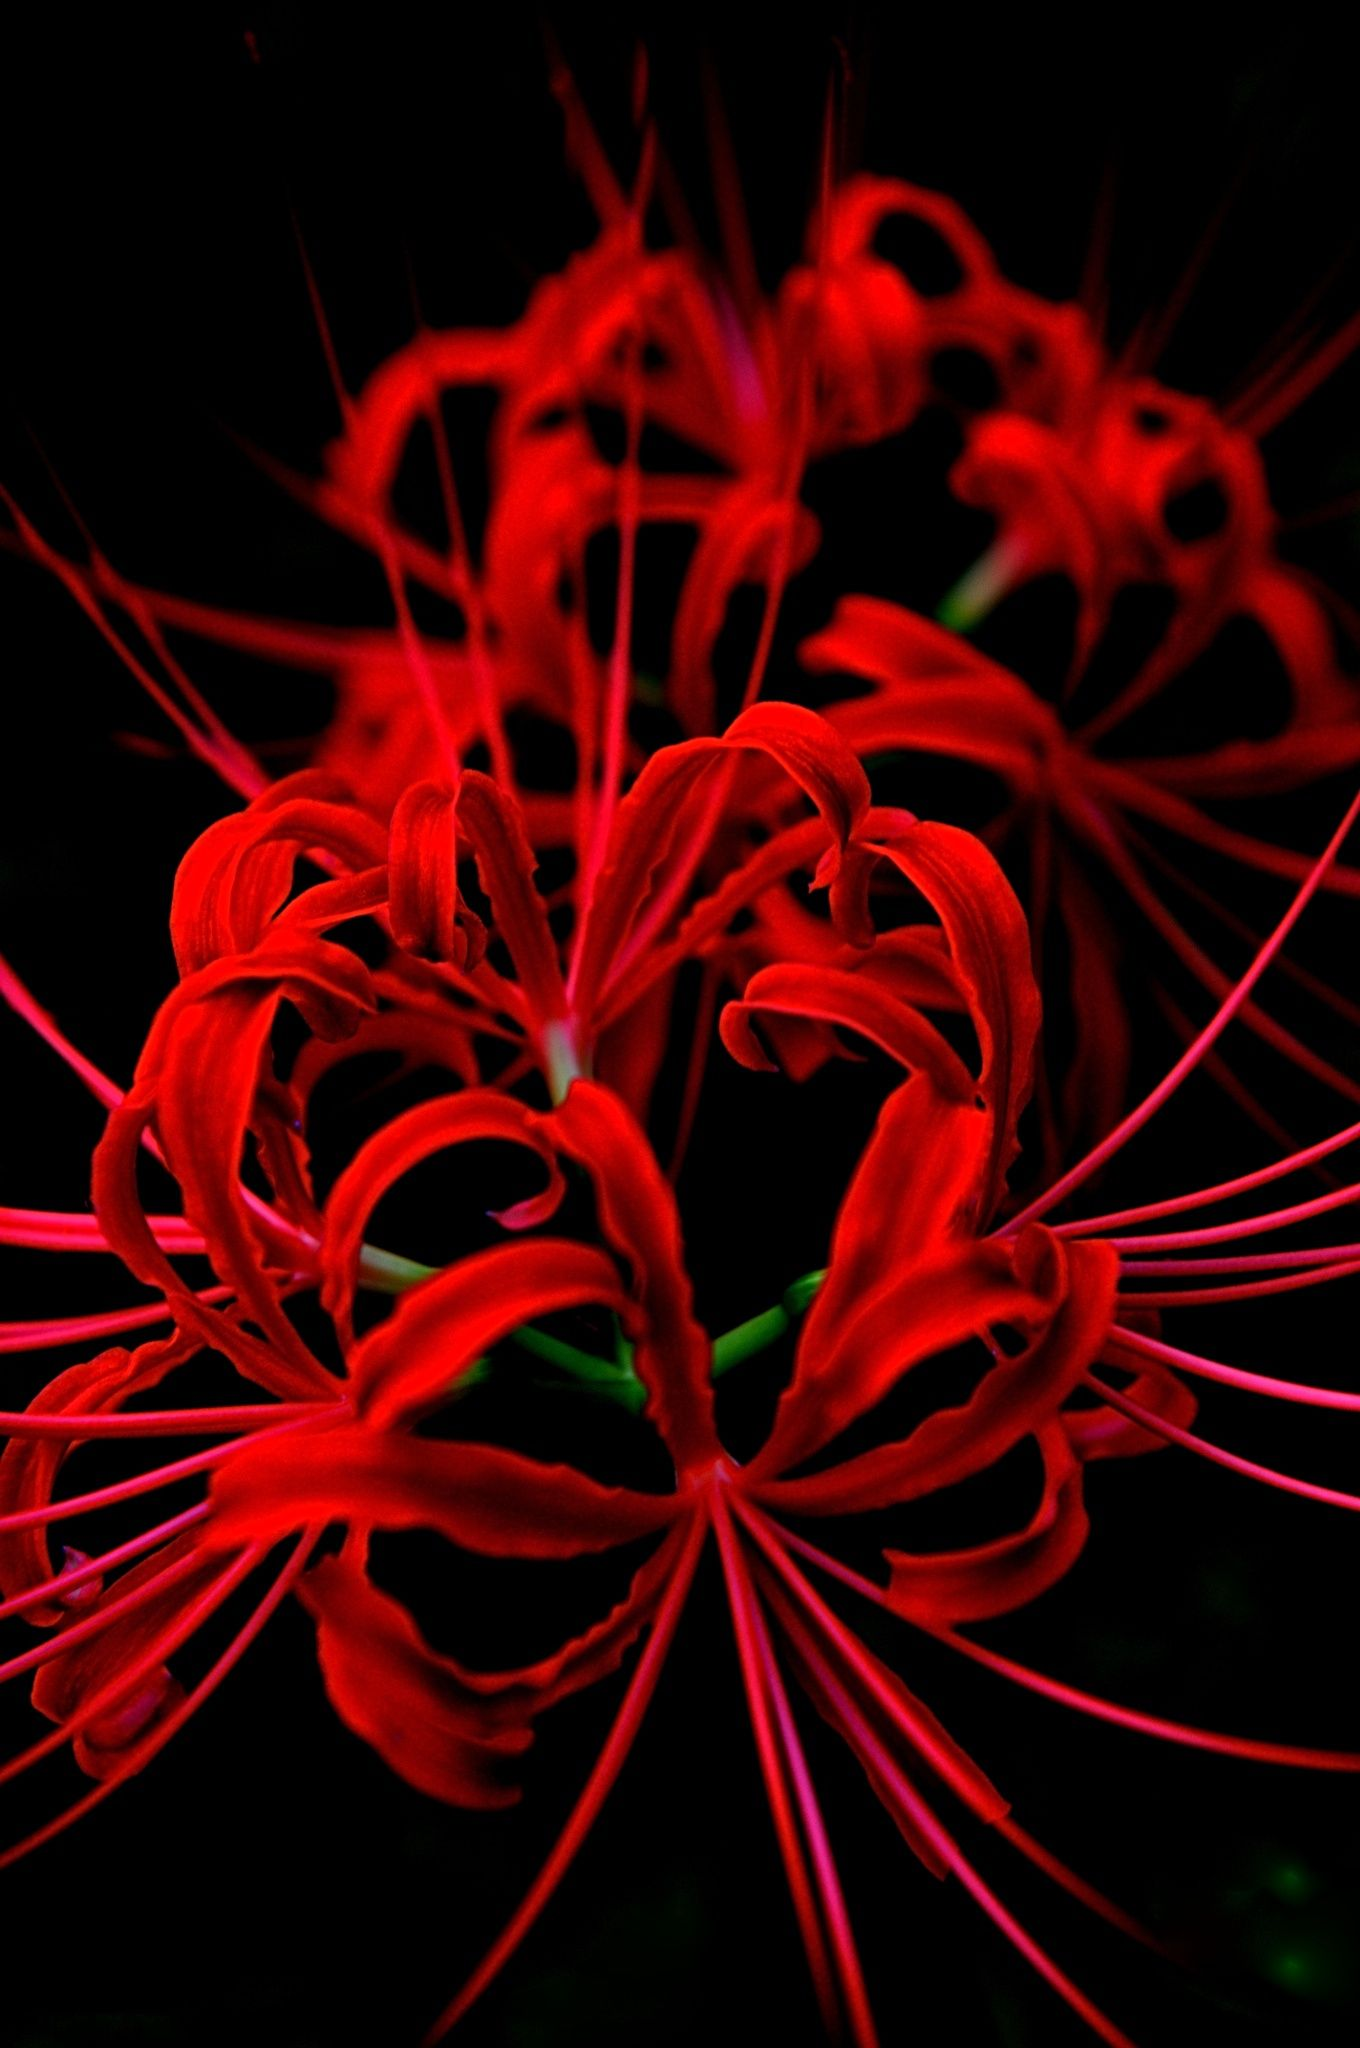 Red Spider Lily Red Spider Lily Red Lily Flower Red Lily